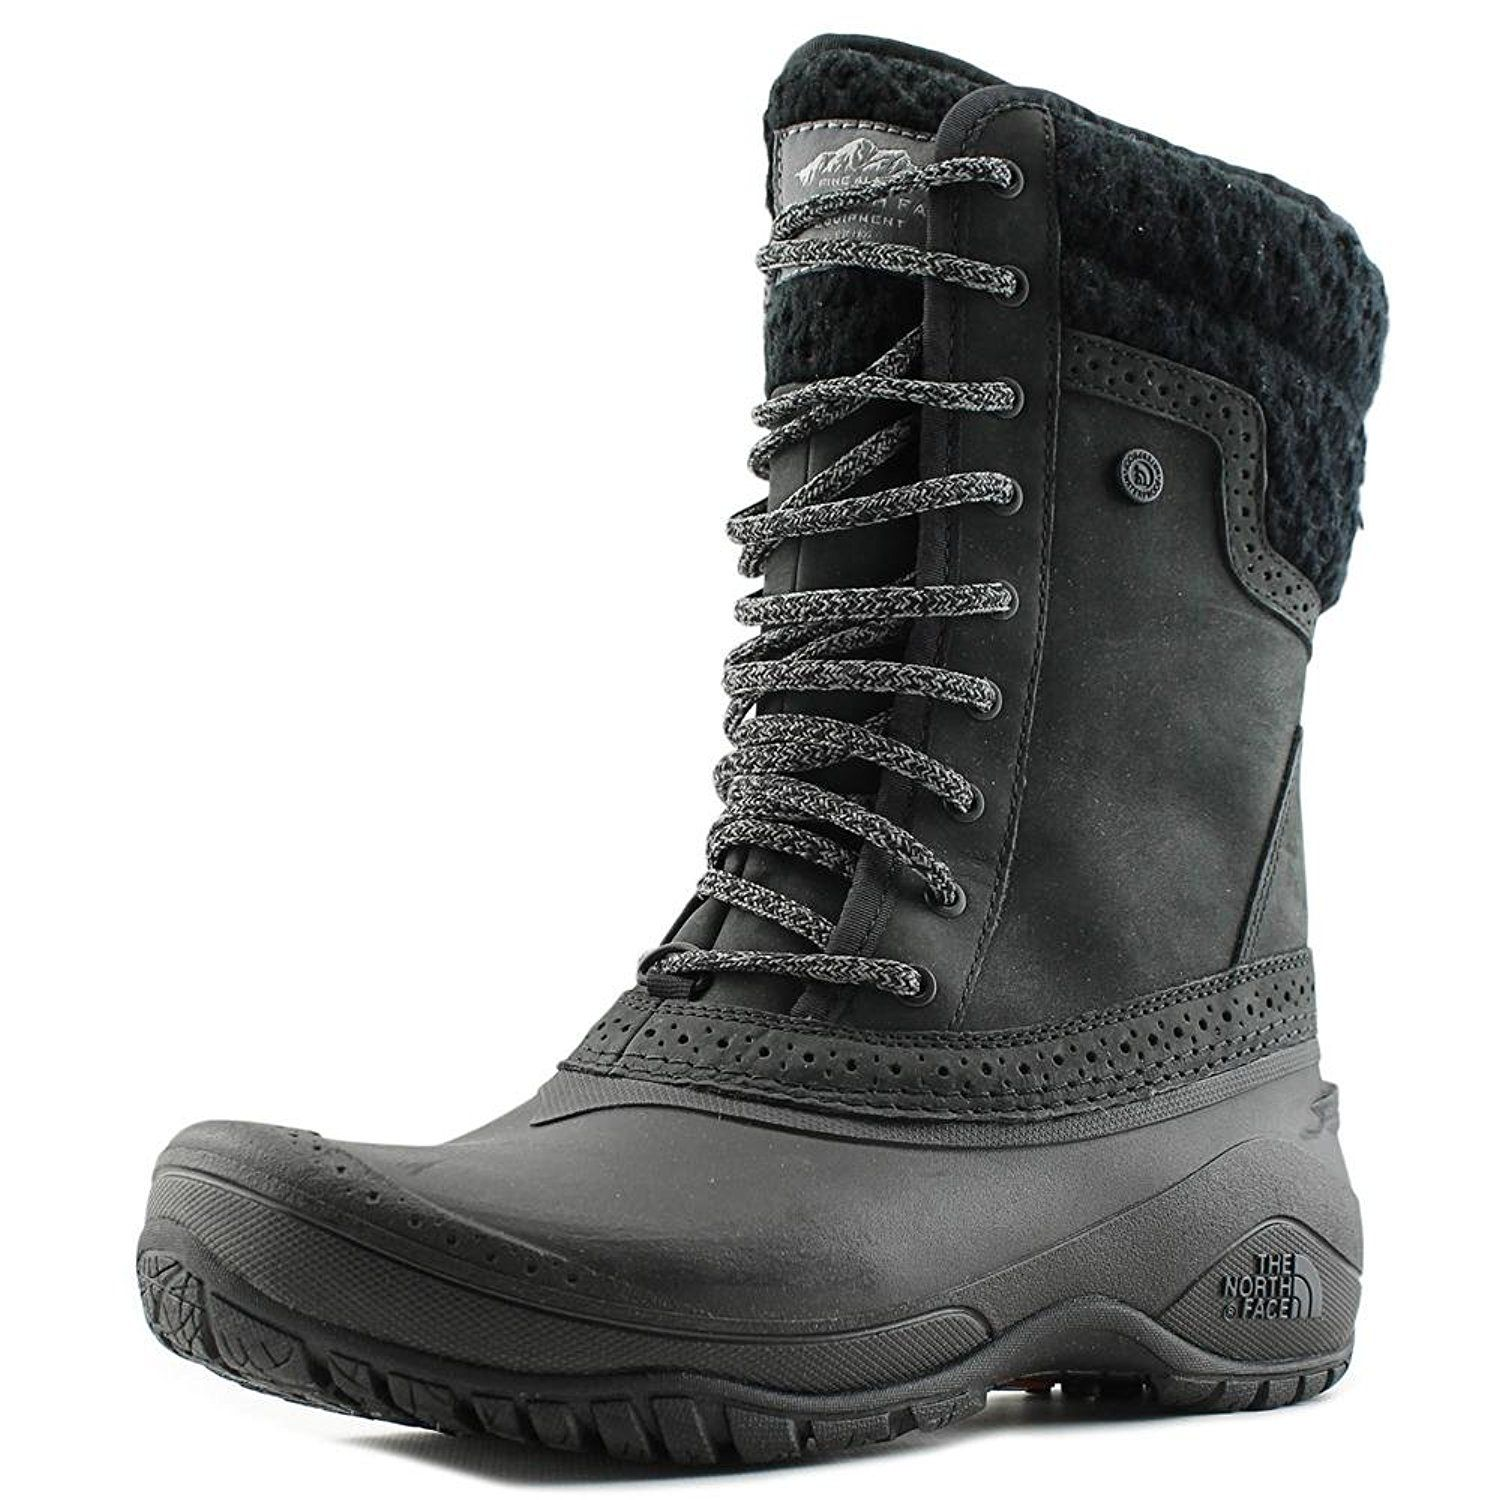 6fb9c2b98 The North Face Women's Shellista II Mid Boot ** Discover this ...